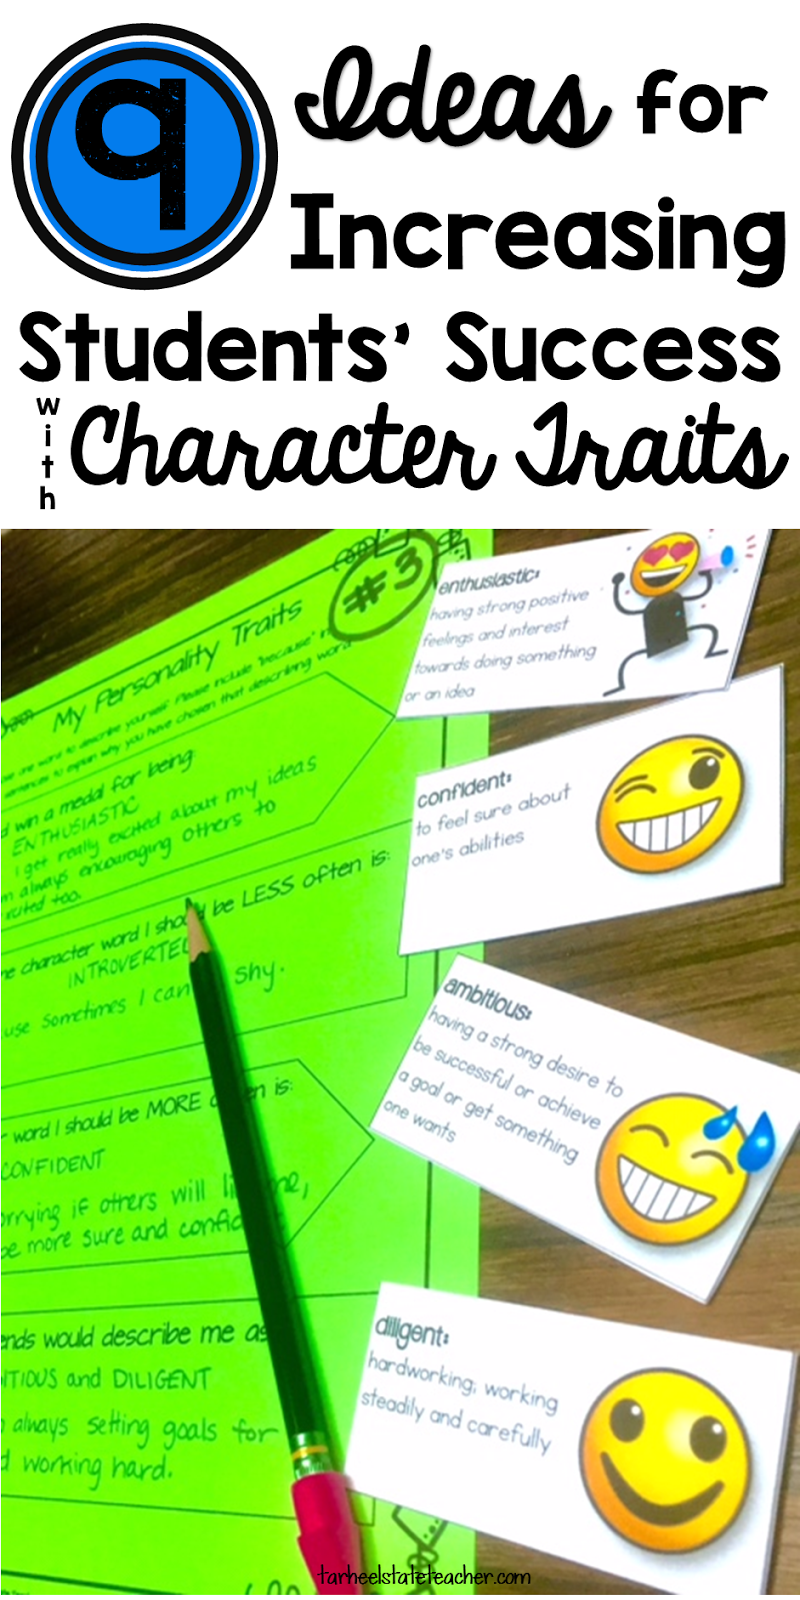 development of personality traits of learners Age level characteristics - kids 4-14 teach effectively - know the child's abilities and limitations character traits of children aged 4-14 years biblical character traits.